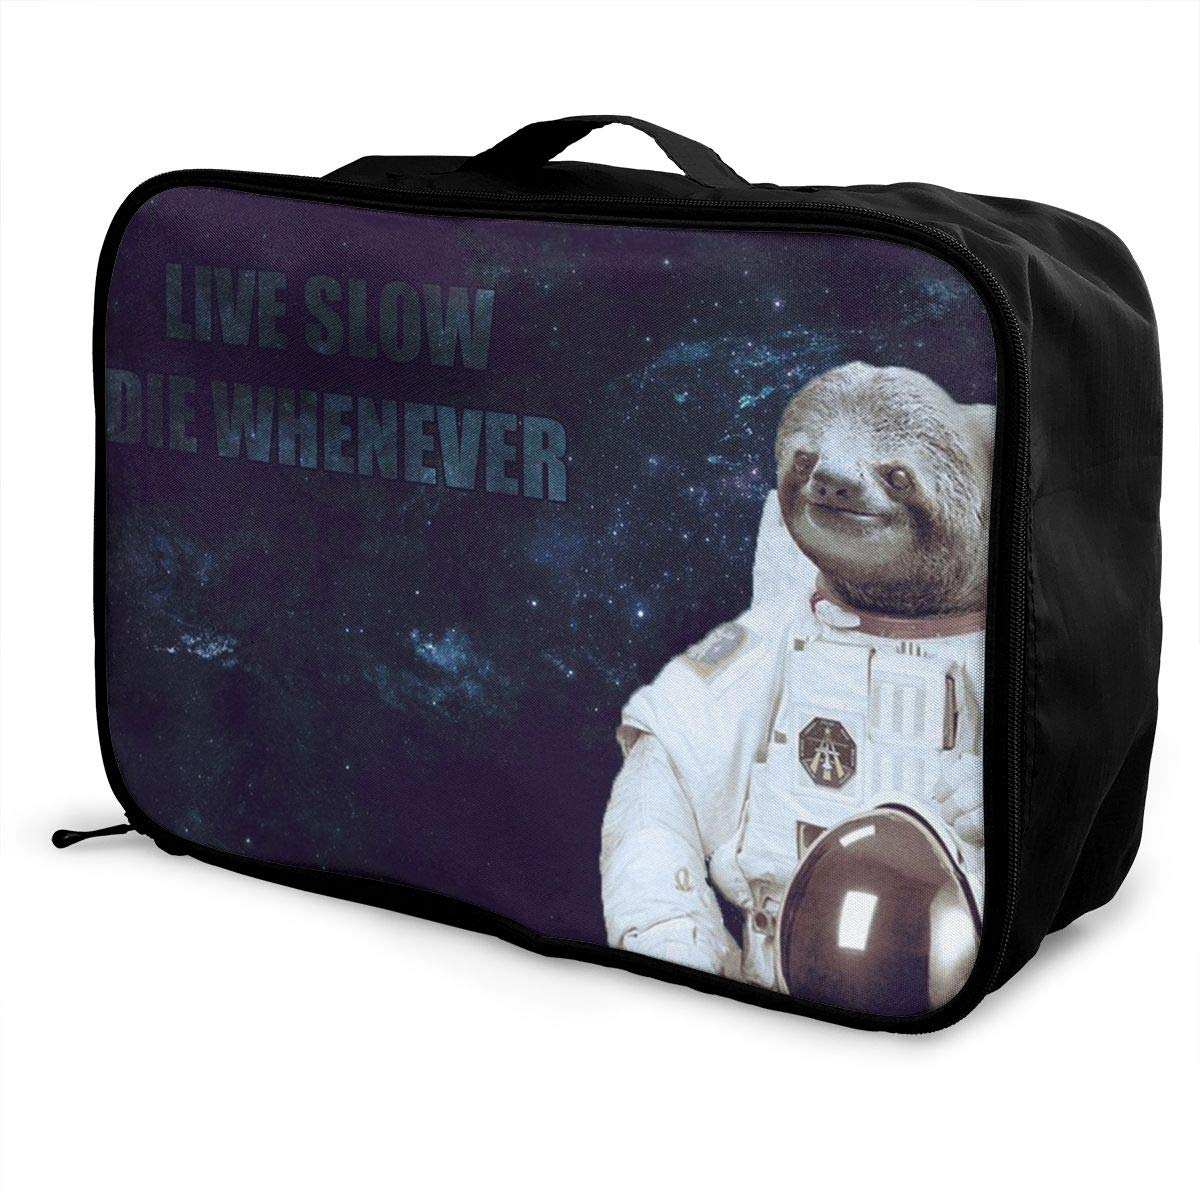 ADGAI Sloth Live Slow Die Whenever Canvas Travel Weekender Bag,Fashion Custom Lightweight Large Capacity Portable Luggage Bag,Suitcase Trolley Bag